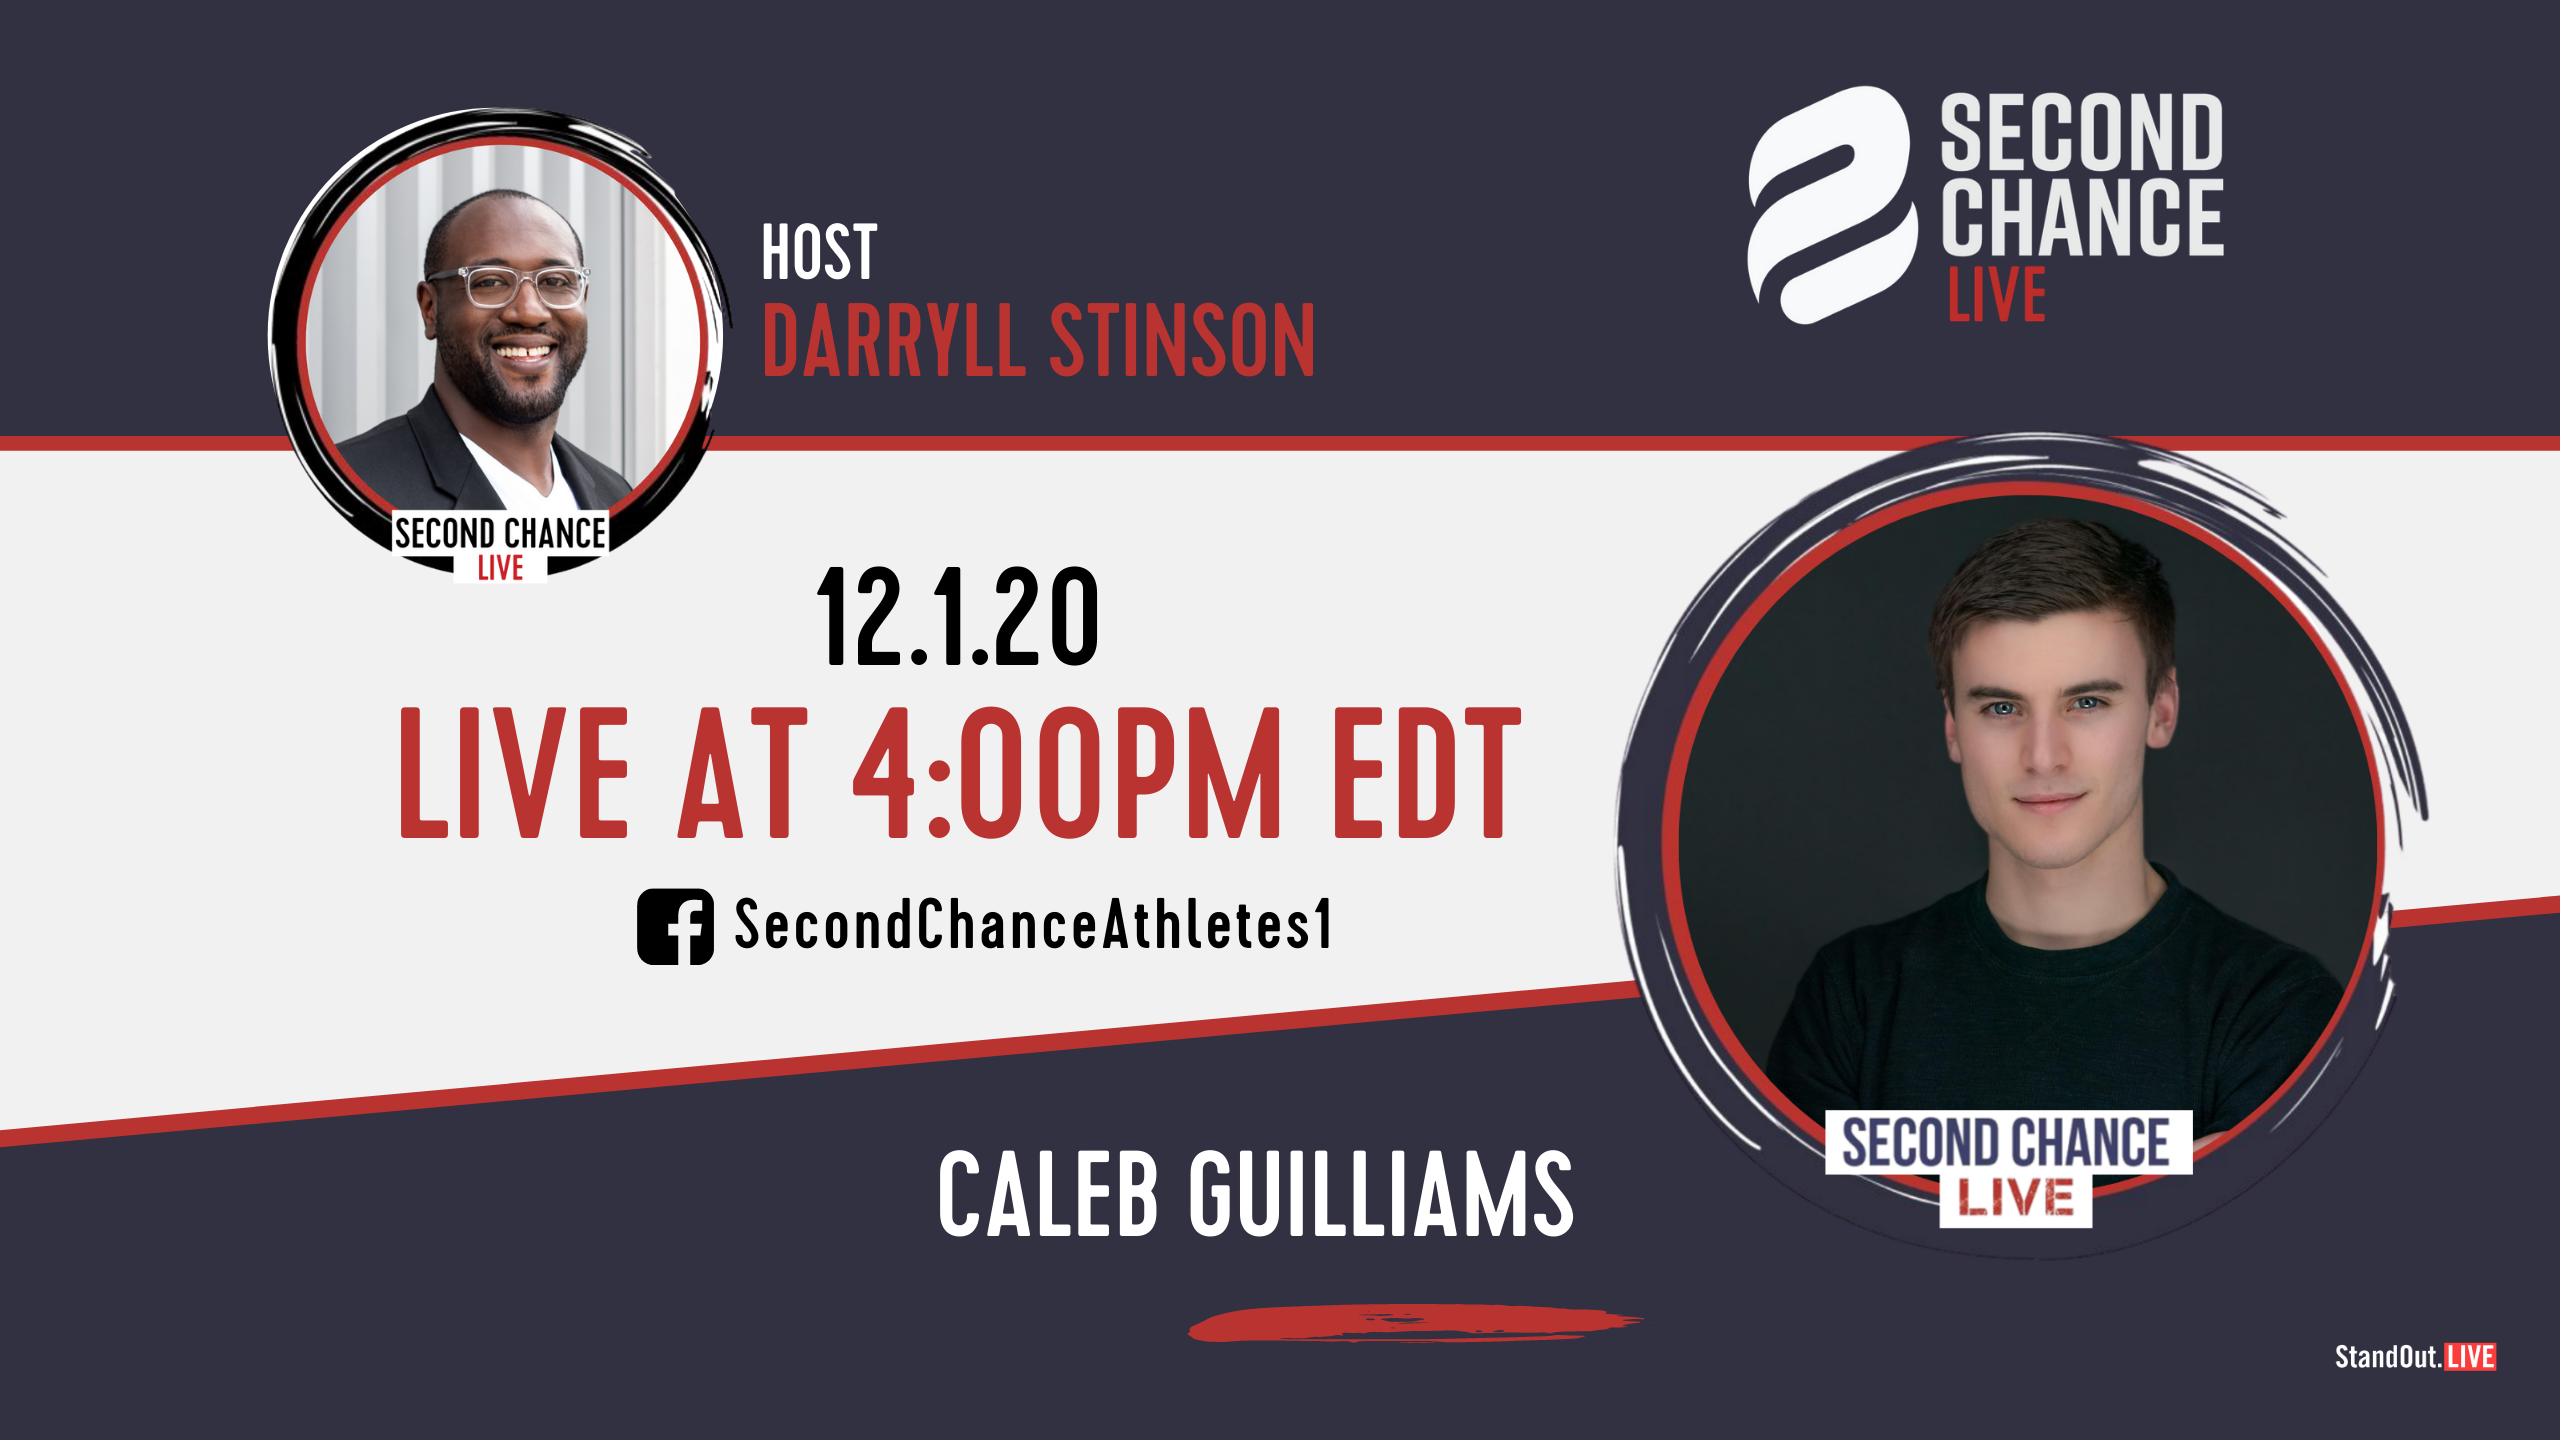 Second Chance LIVE -with Caleb Guilliams